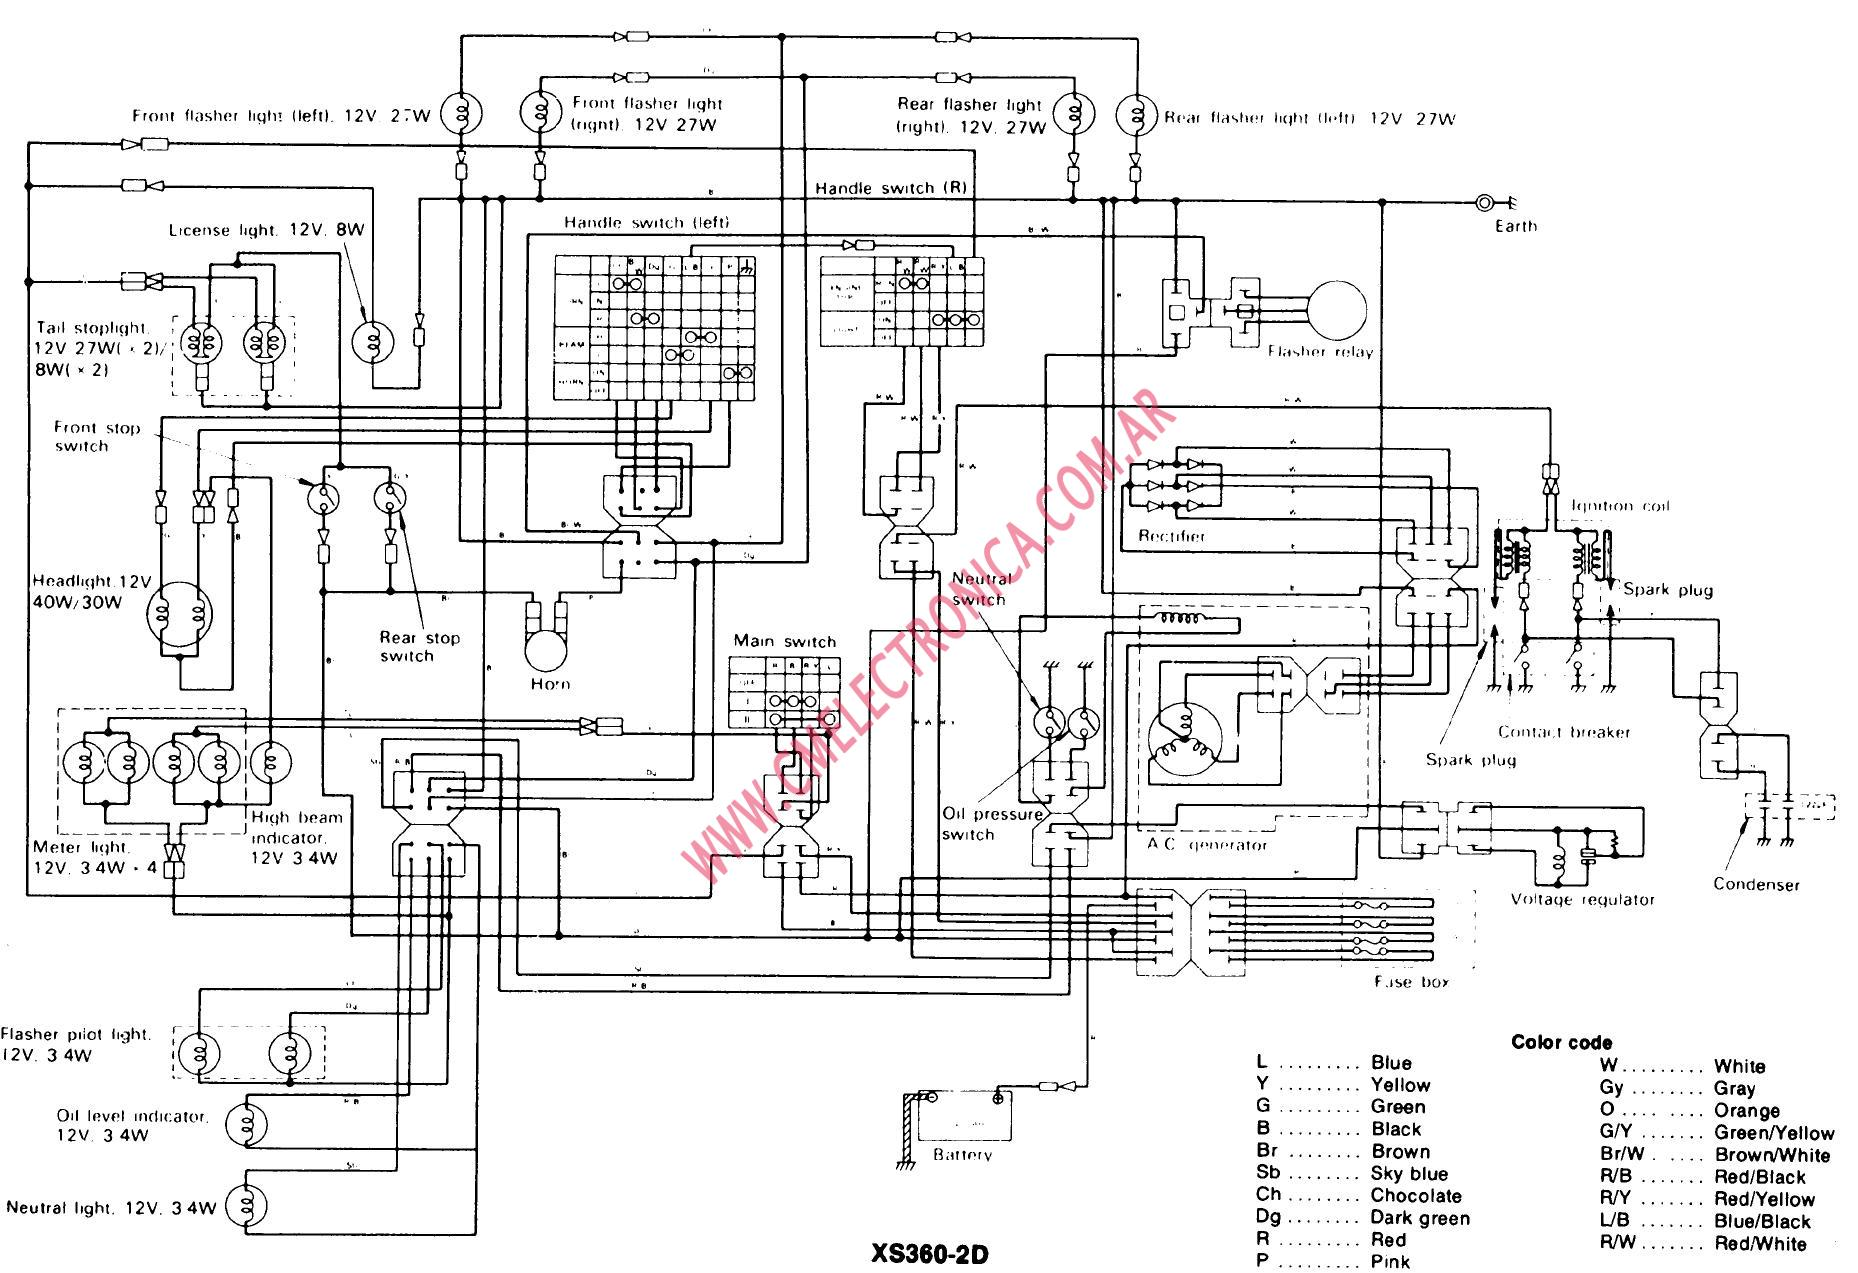 1980 Yamaha Xs850 Wiring Diagram - 240v Electric Baseboard Heat Wiring  Diagram Electrical Diy | Bege Wiring Diagram | 1980 Yamaha Xs850 Wiring Diagram |  | Bege Wiring Diagram